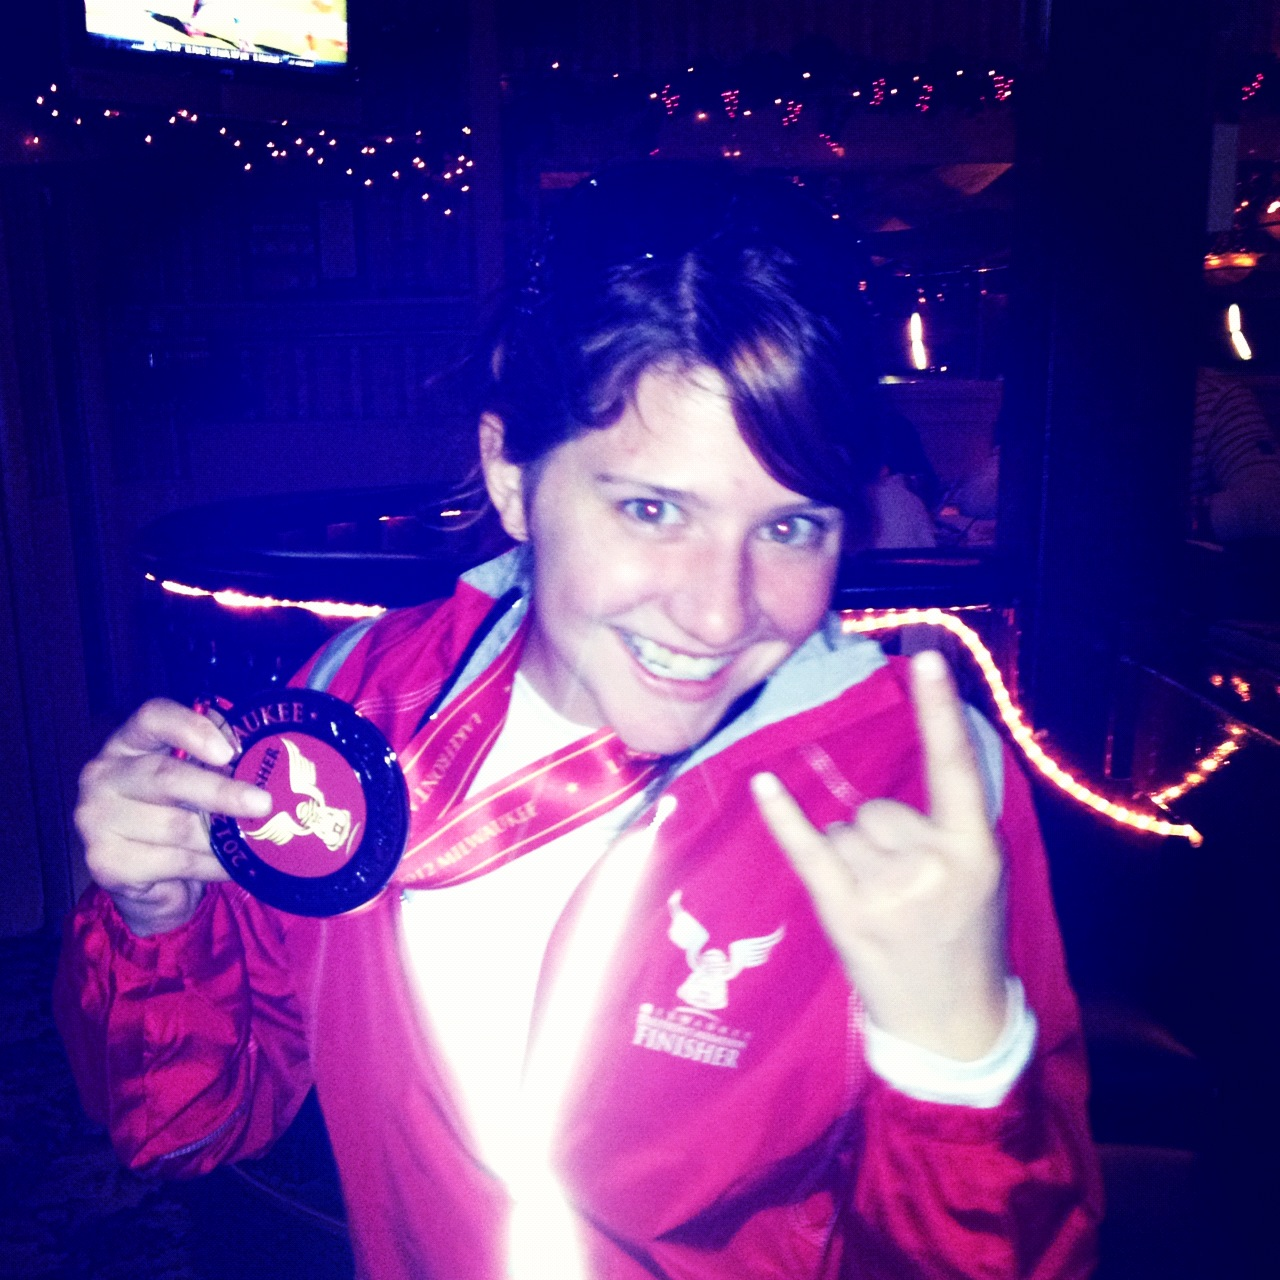 Finisher medal and jacket pose